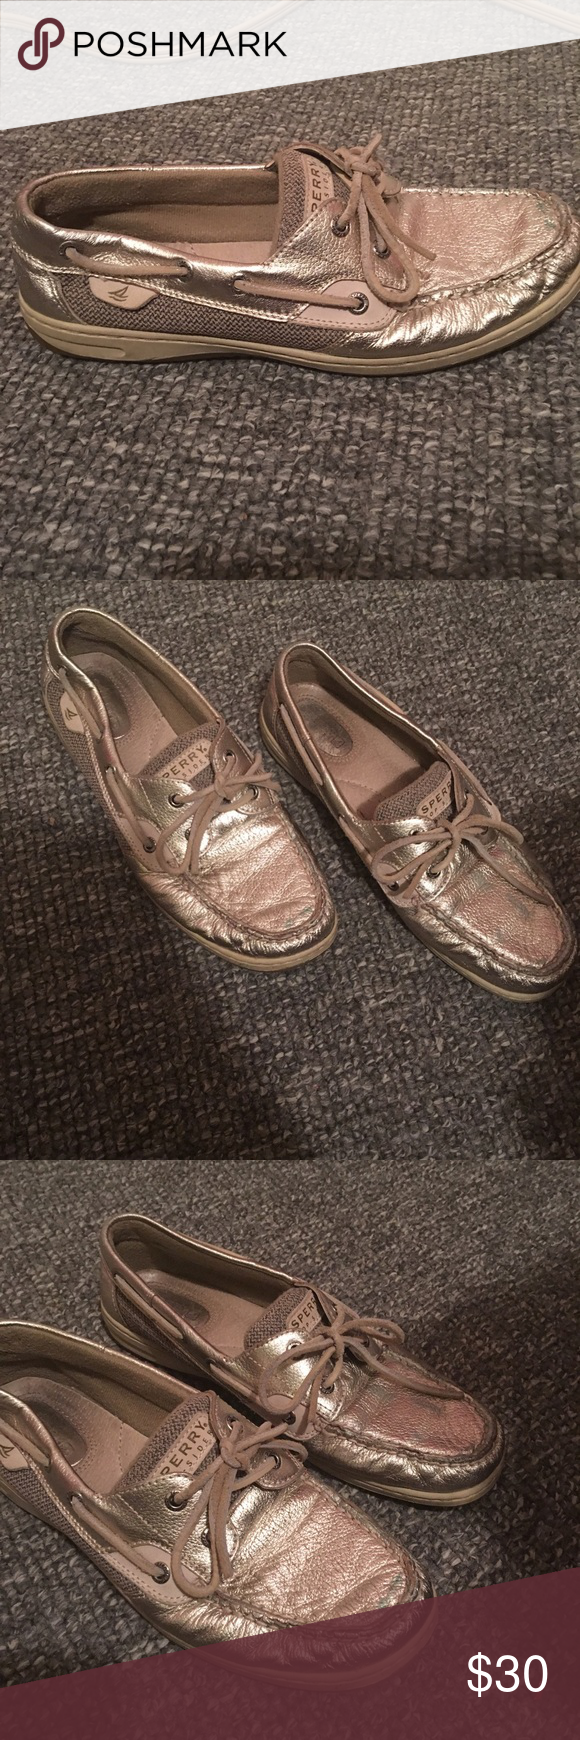 Shoes Size 10 slightly worn still good condition Sperry Shoes Flats & Loafers